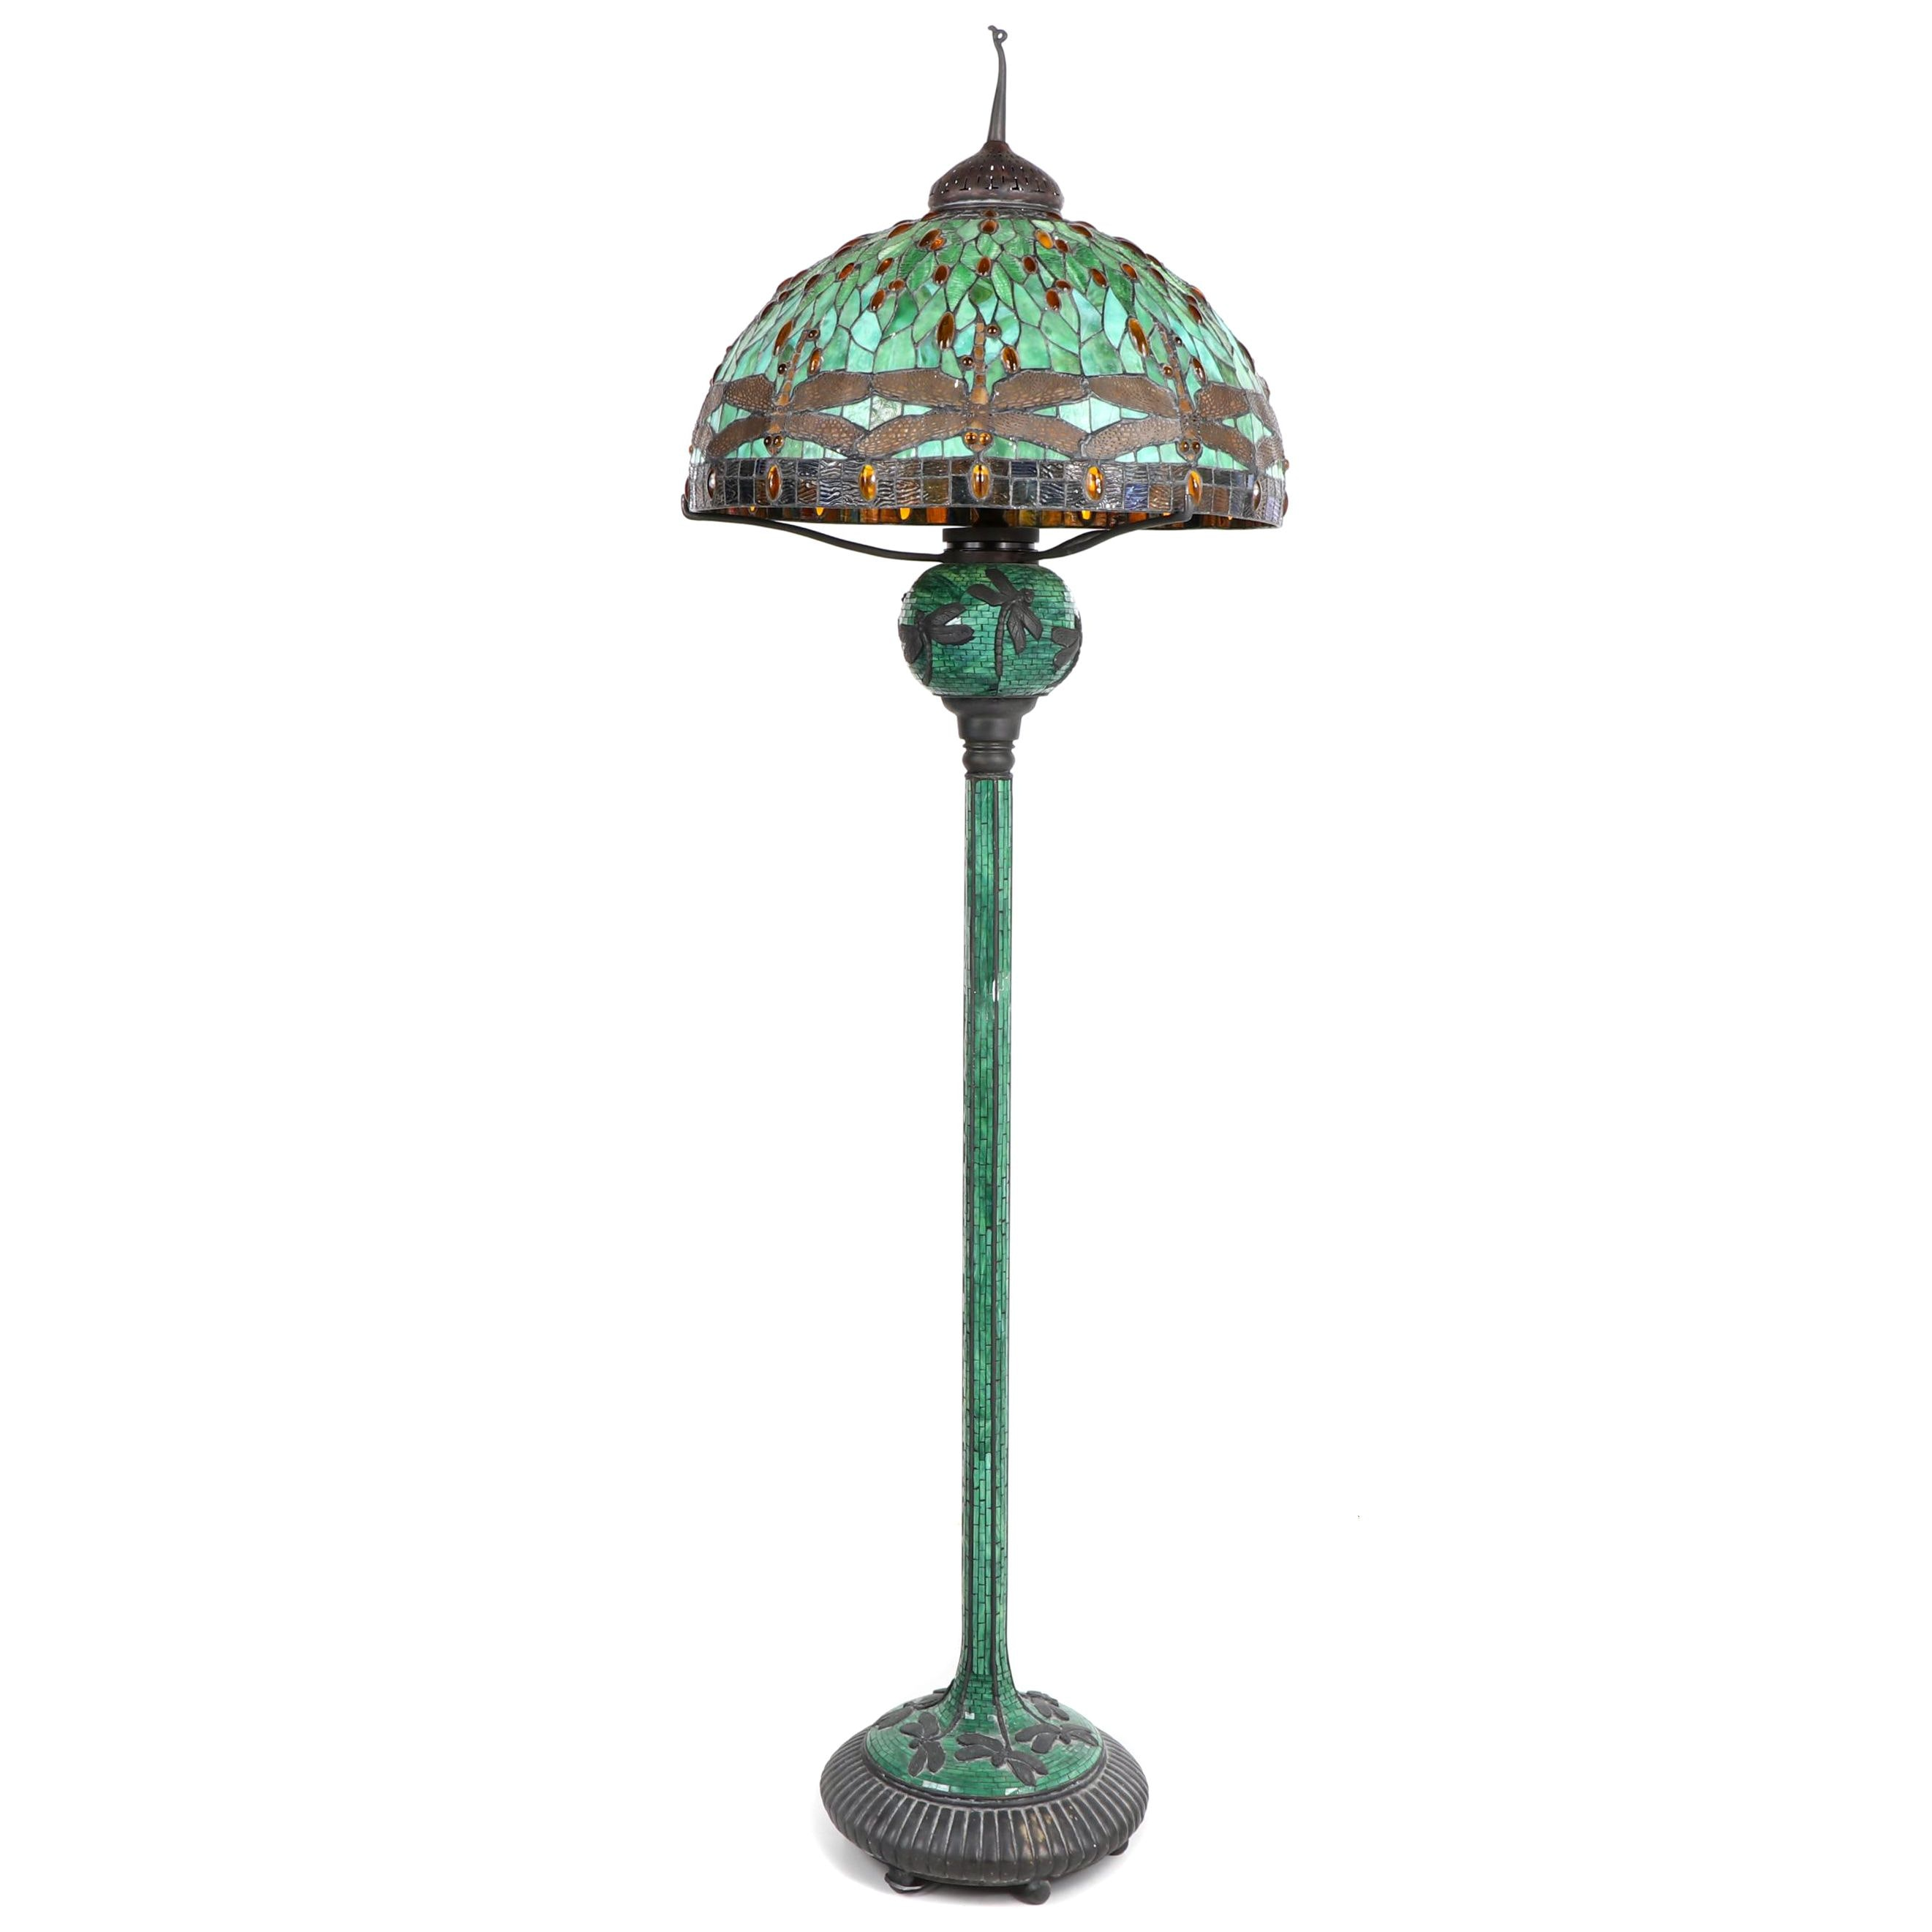 JSW Studios Leaded Glass, Mosaic and Patinated Metal Dragonfly Floor Lamp